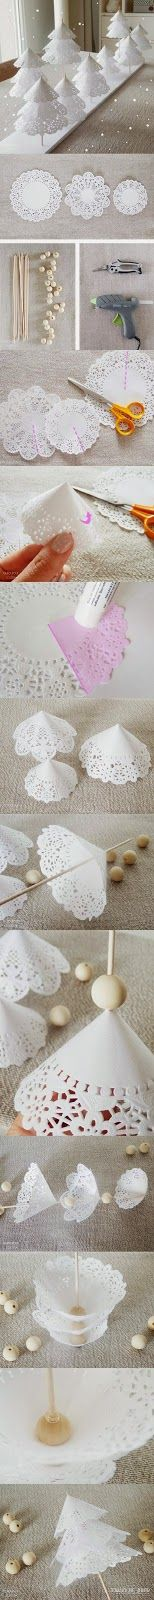 White Doily Christmas Tree Decorations: great for a table centerpiece or to create a table-scape scene. Great Christmas kid craft. Lemiemilleidee: ALBERI DI NATALE